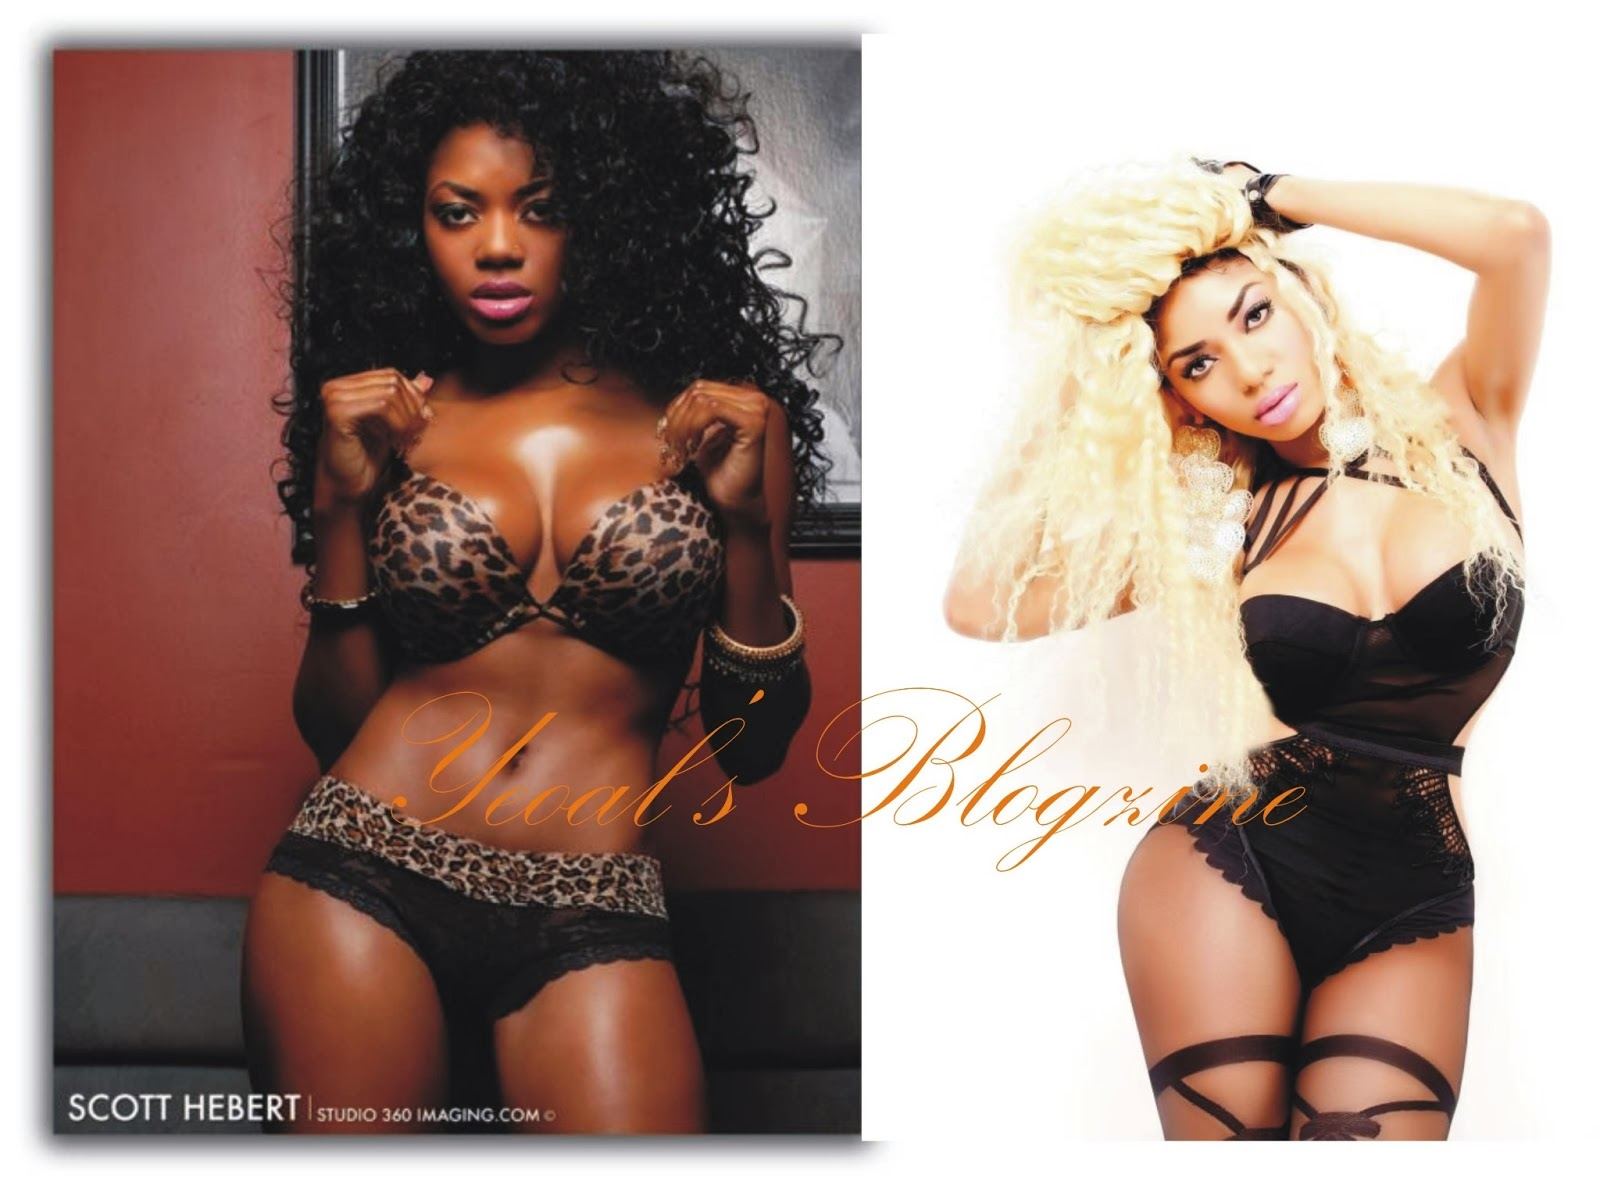 dencia b4 and after y